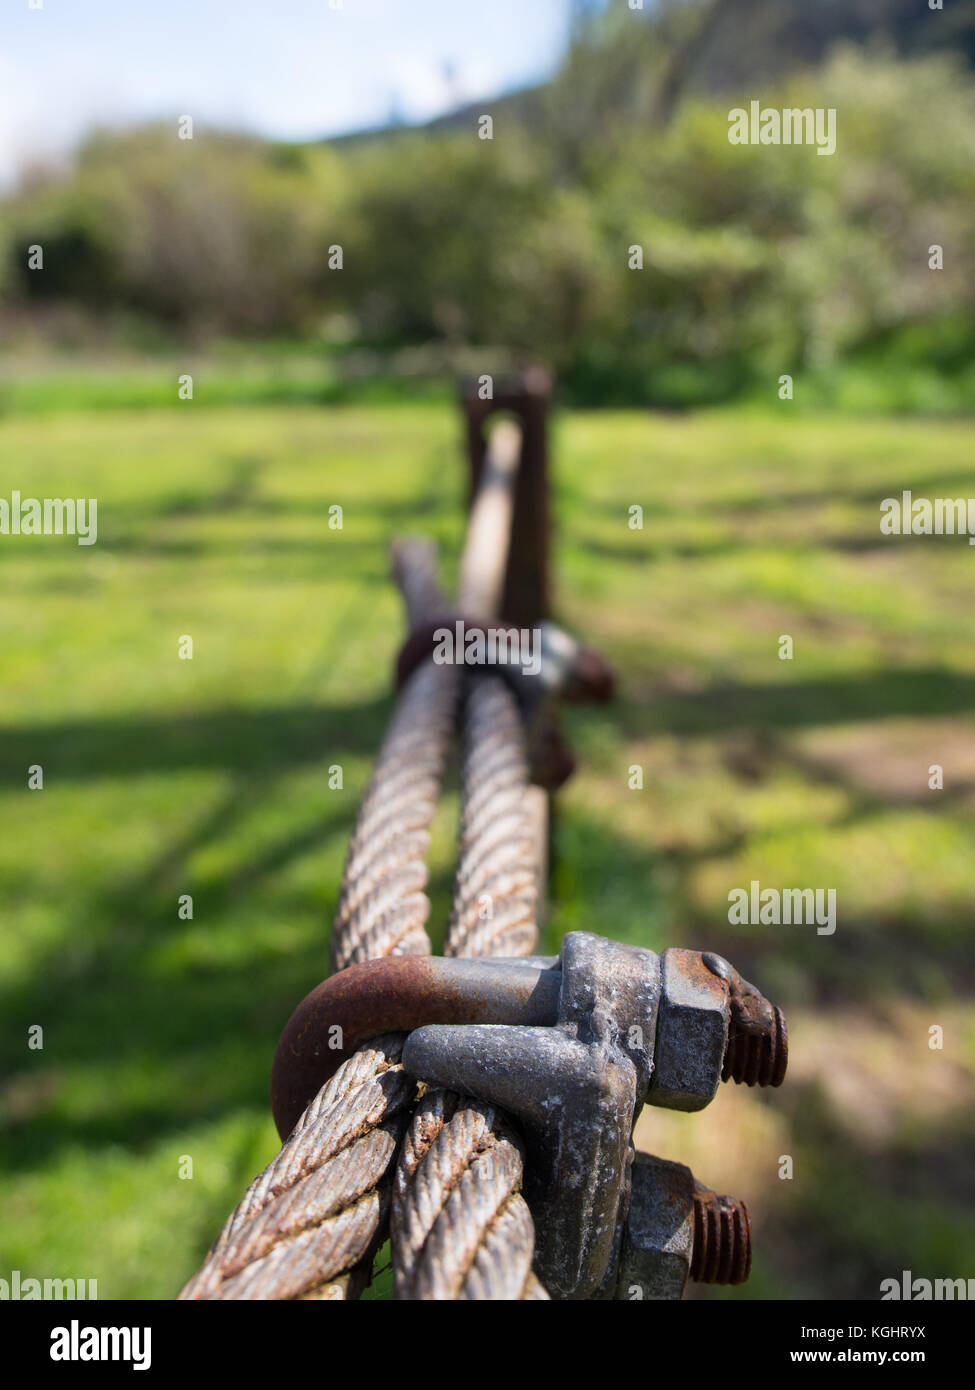 Wire Fence Line - Stock Image